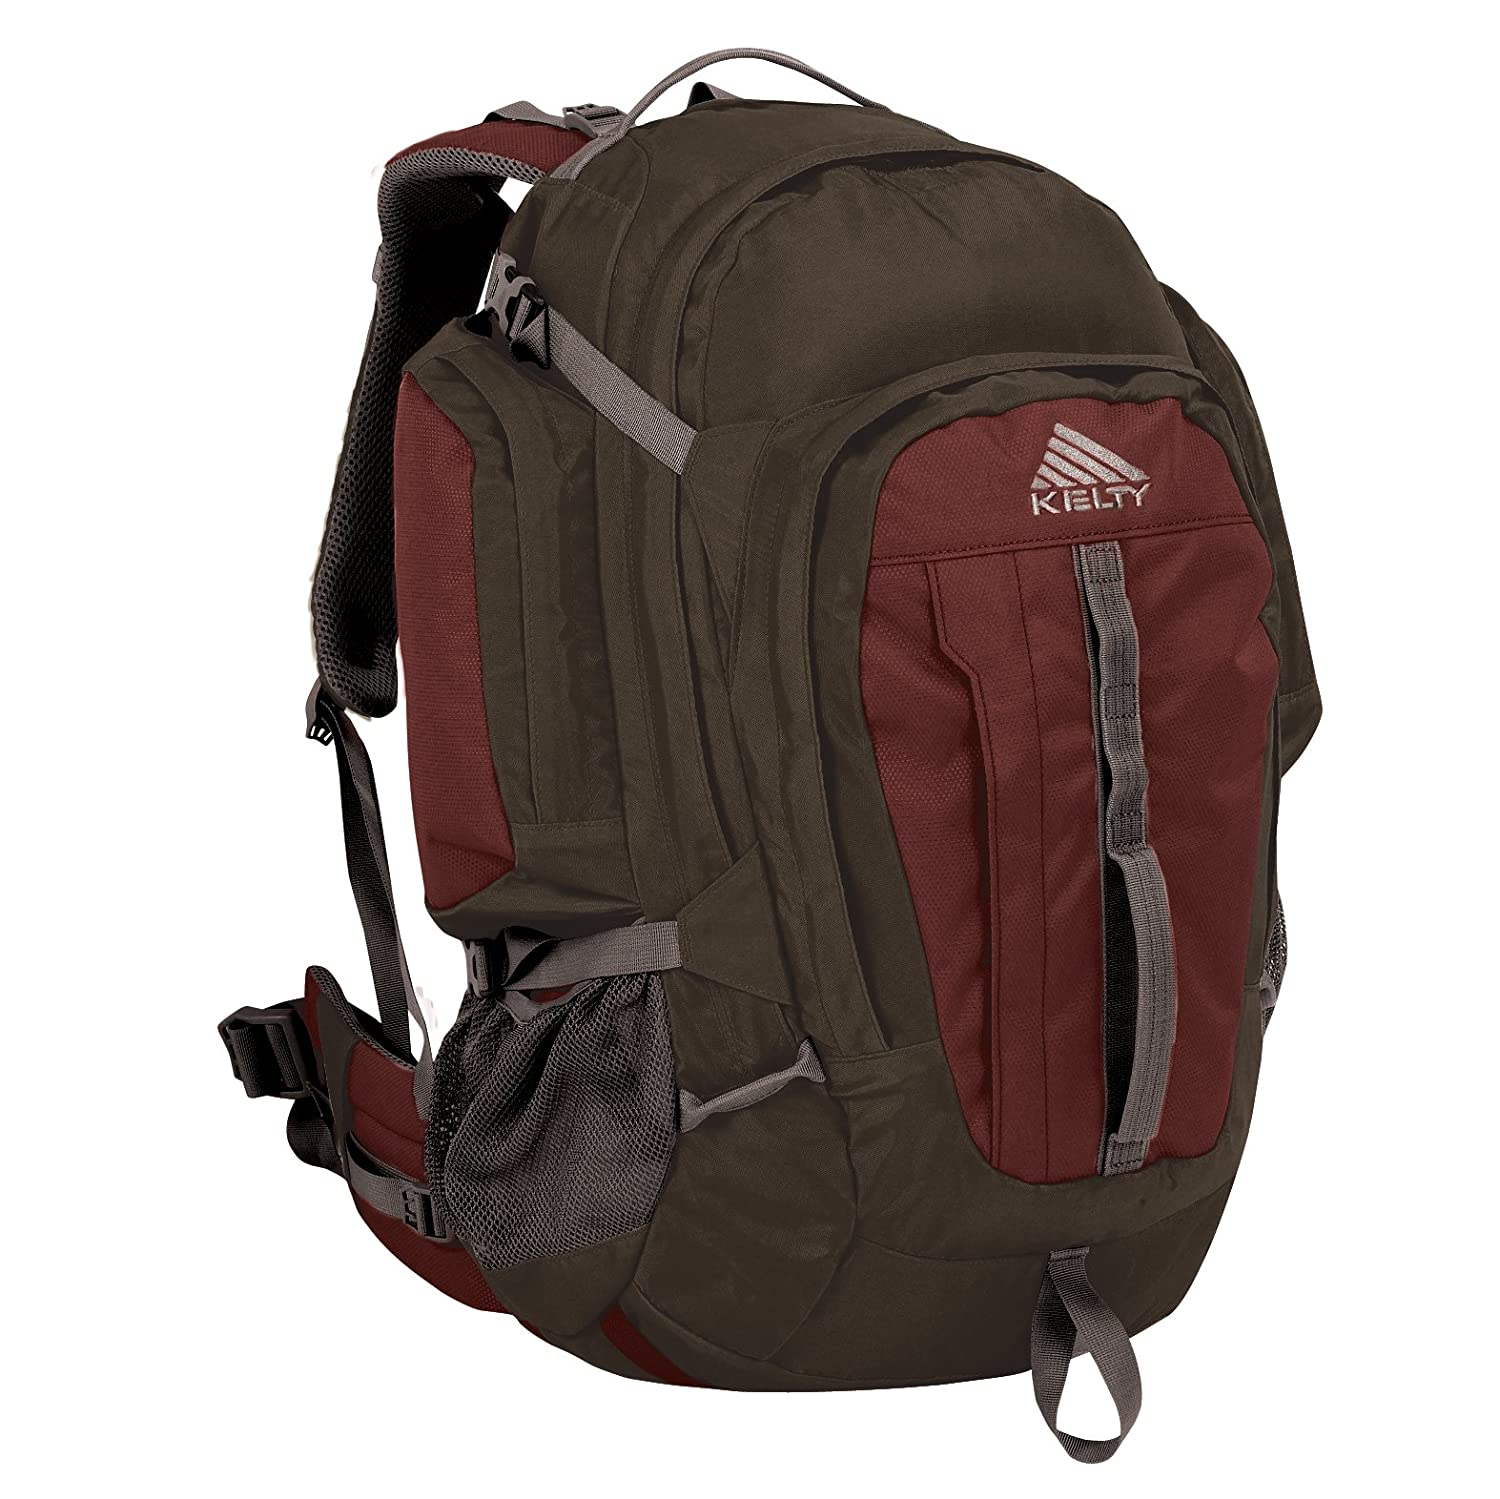 Kelty Redwing 44 Interne Rahmen Pack, Unisex, 22615611JV, Java, One ...